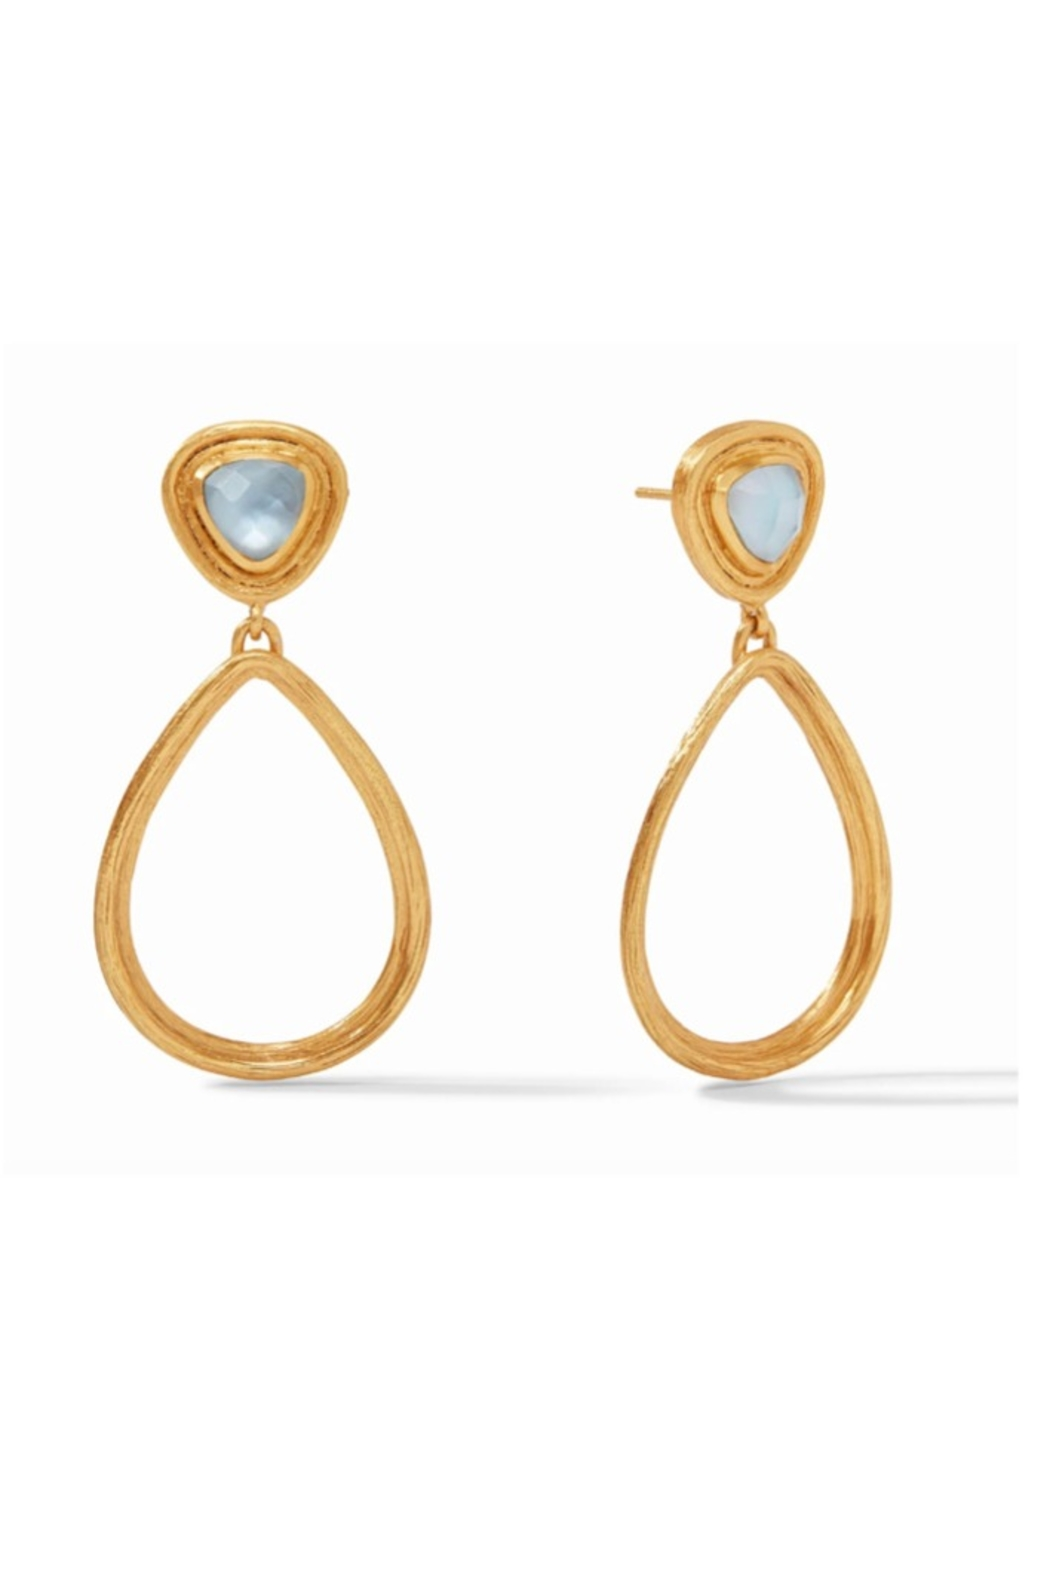 Julie Vos Barcelona Statement Earring Gold Iridescent Chalcedony Blue - Main Image